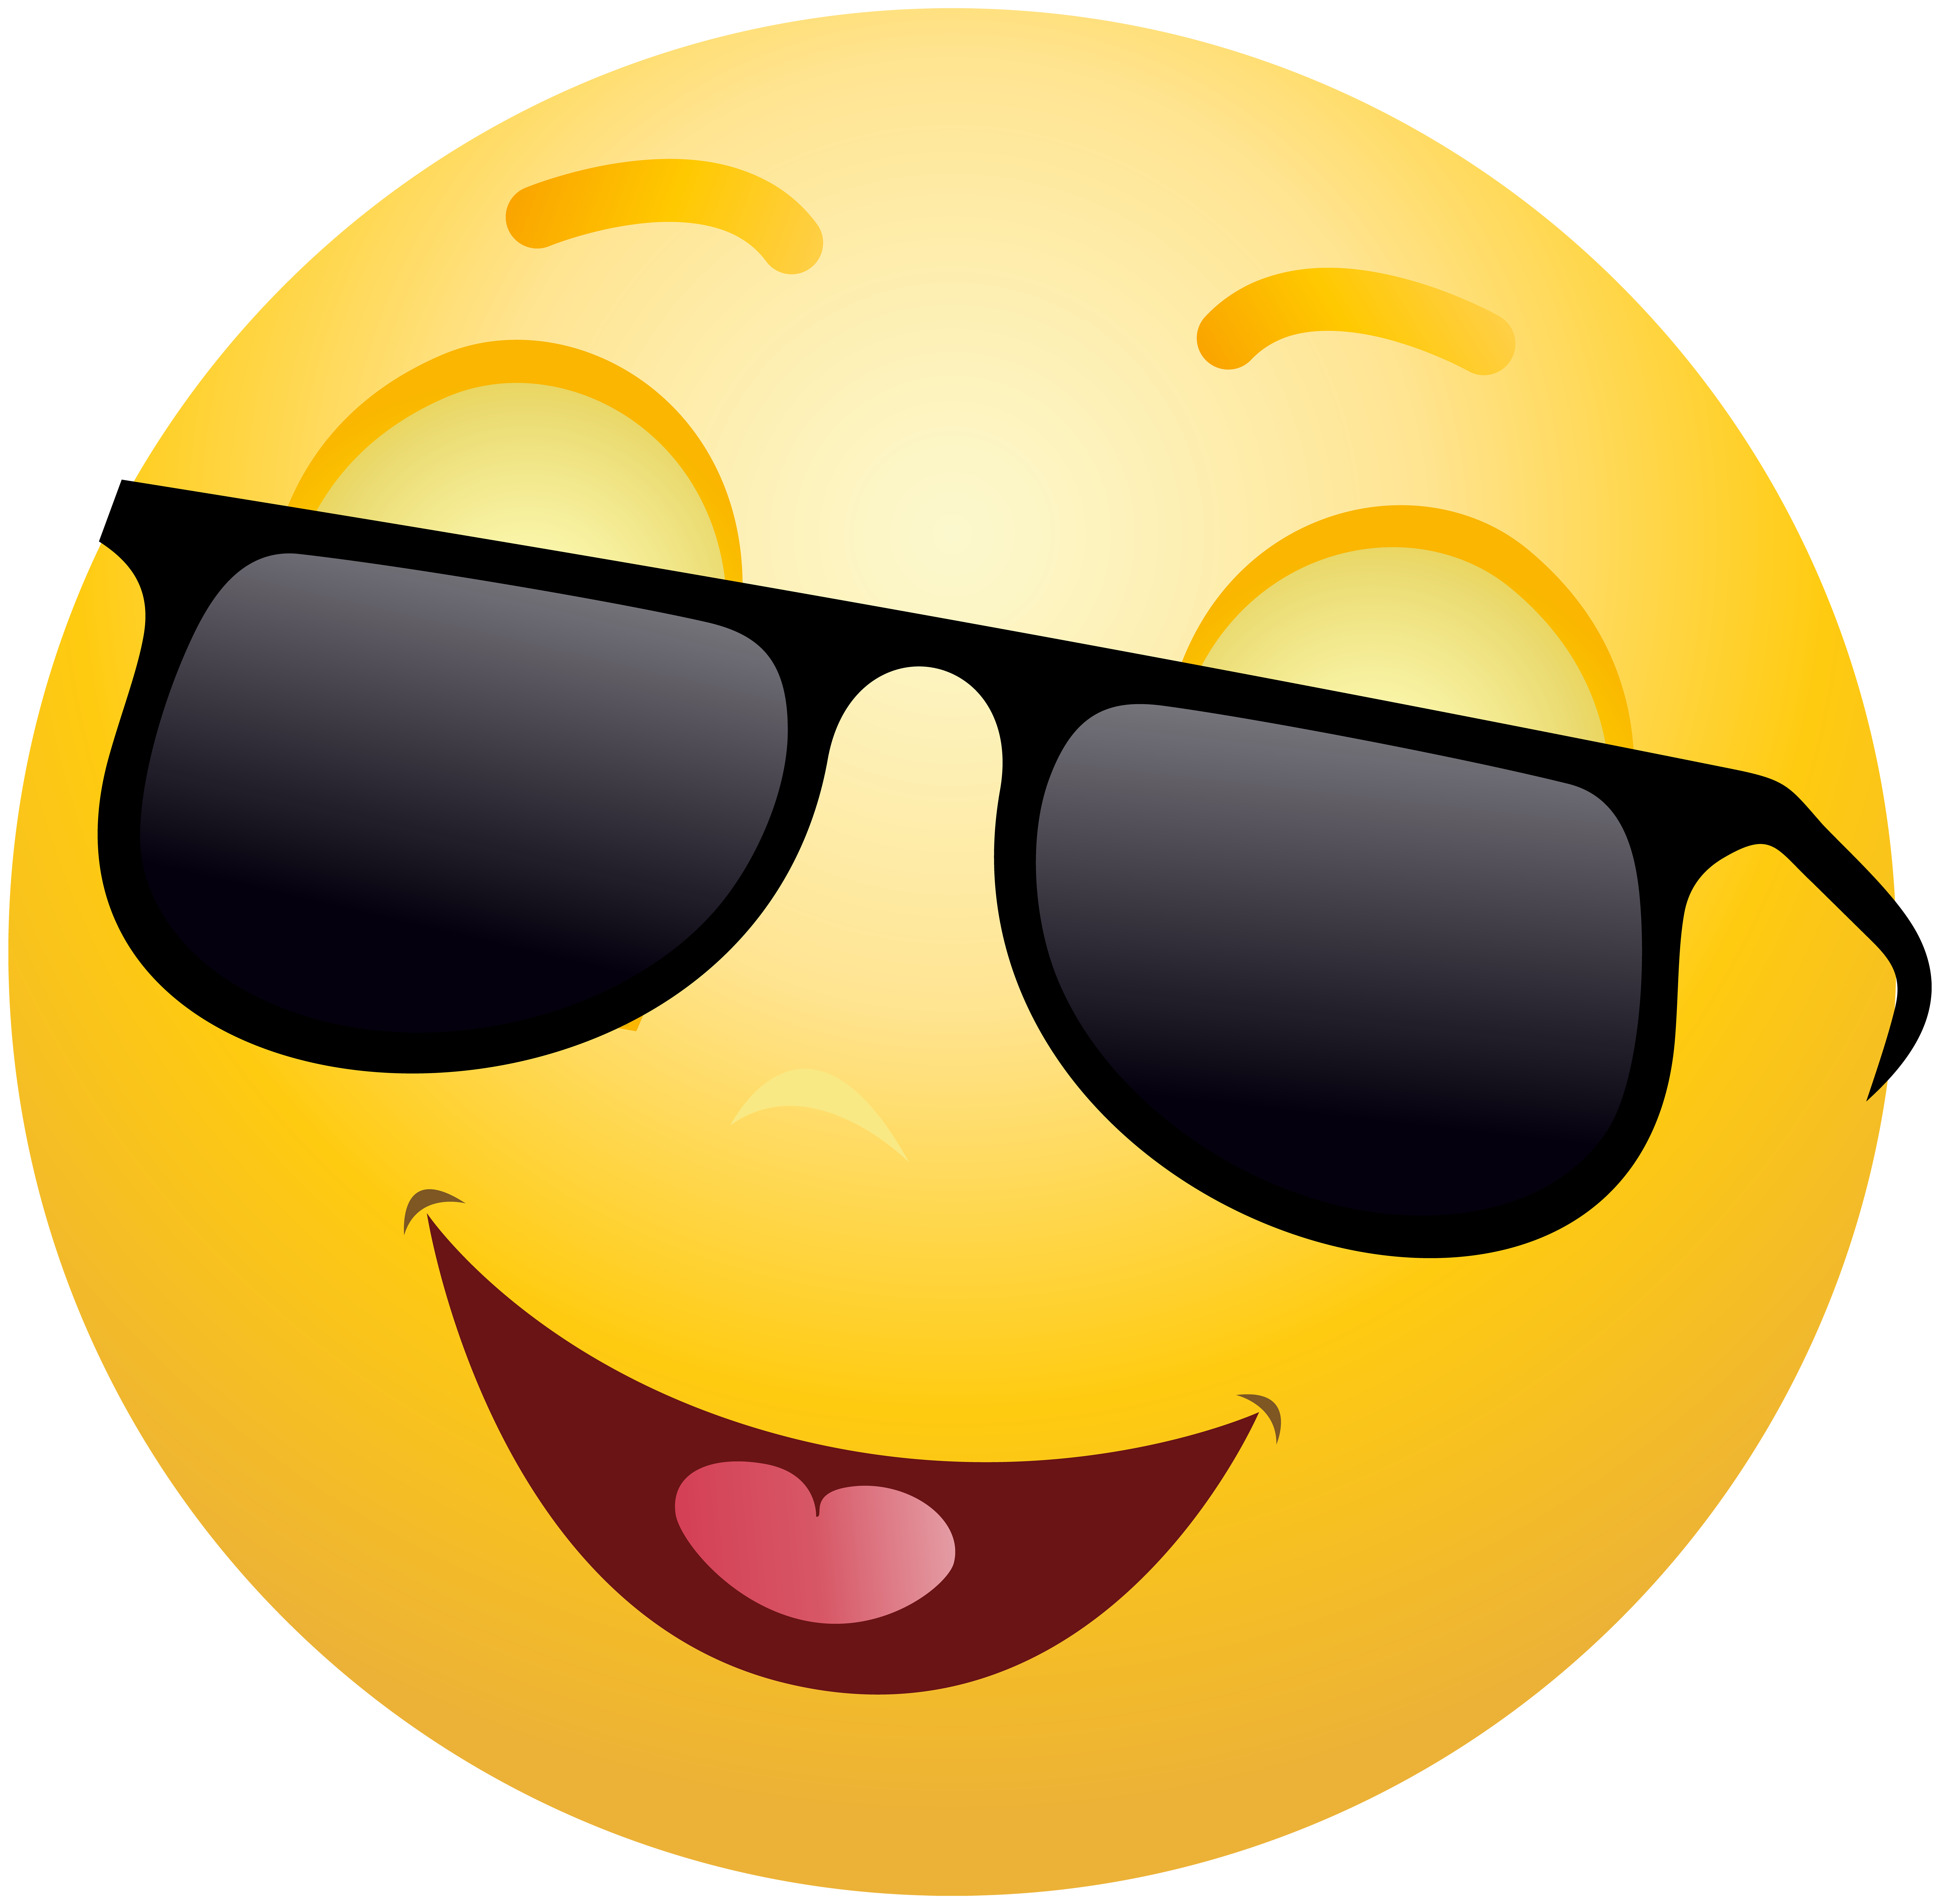 Smiling emoticon with sunglasses. Smiley clipart smile clipart royalty free